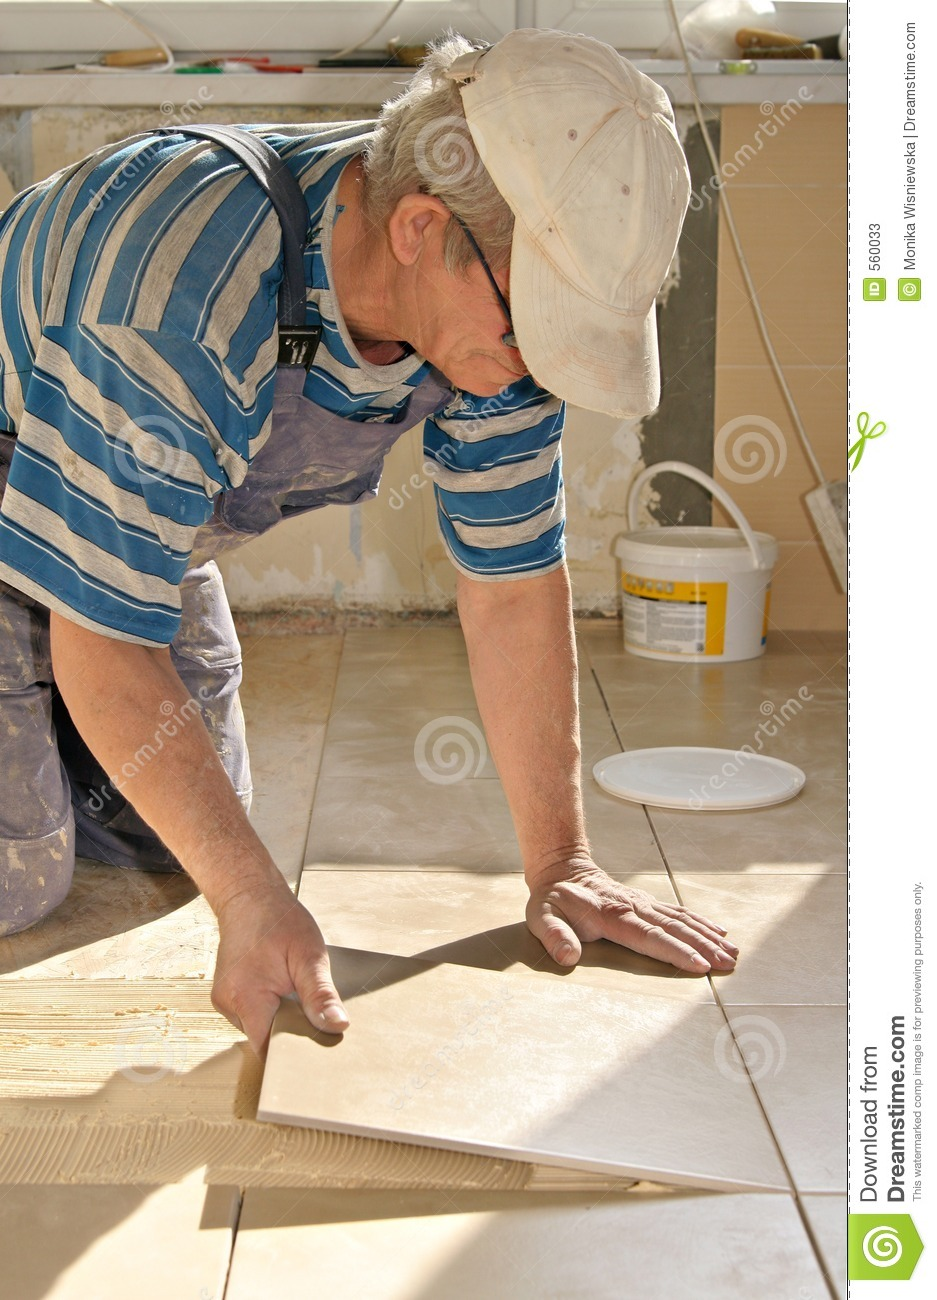 Tiler Tile Floor Stock Image Image Of Males Substrate 560033